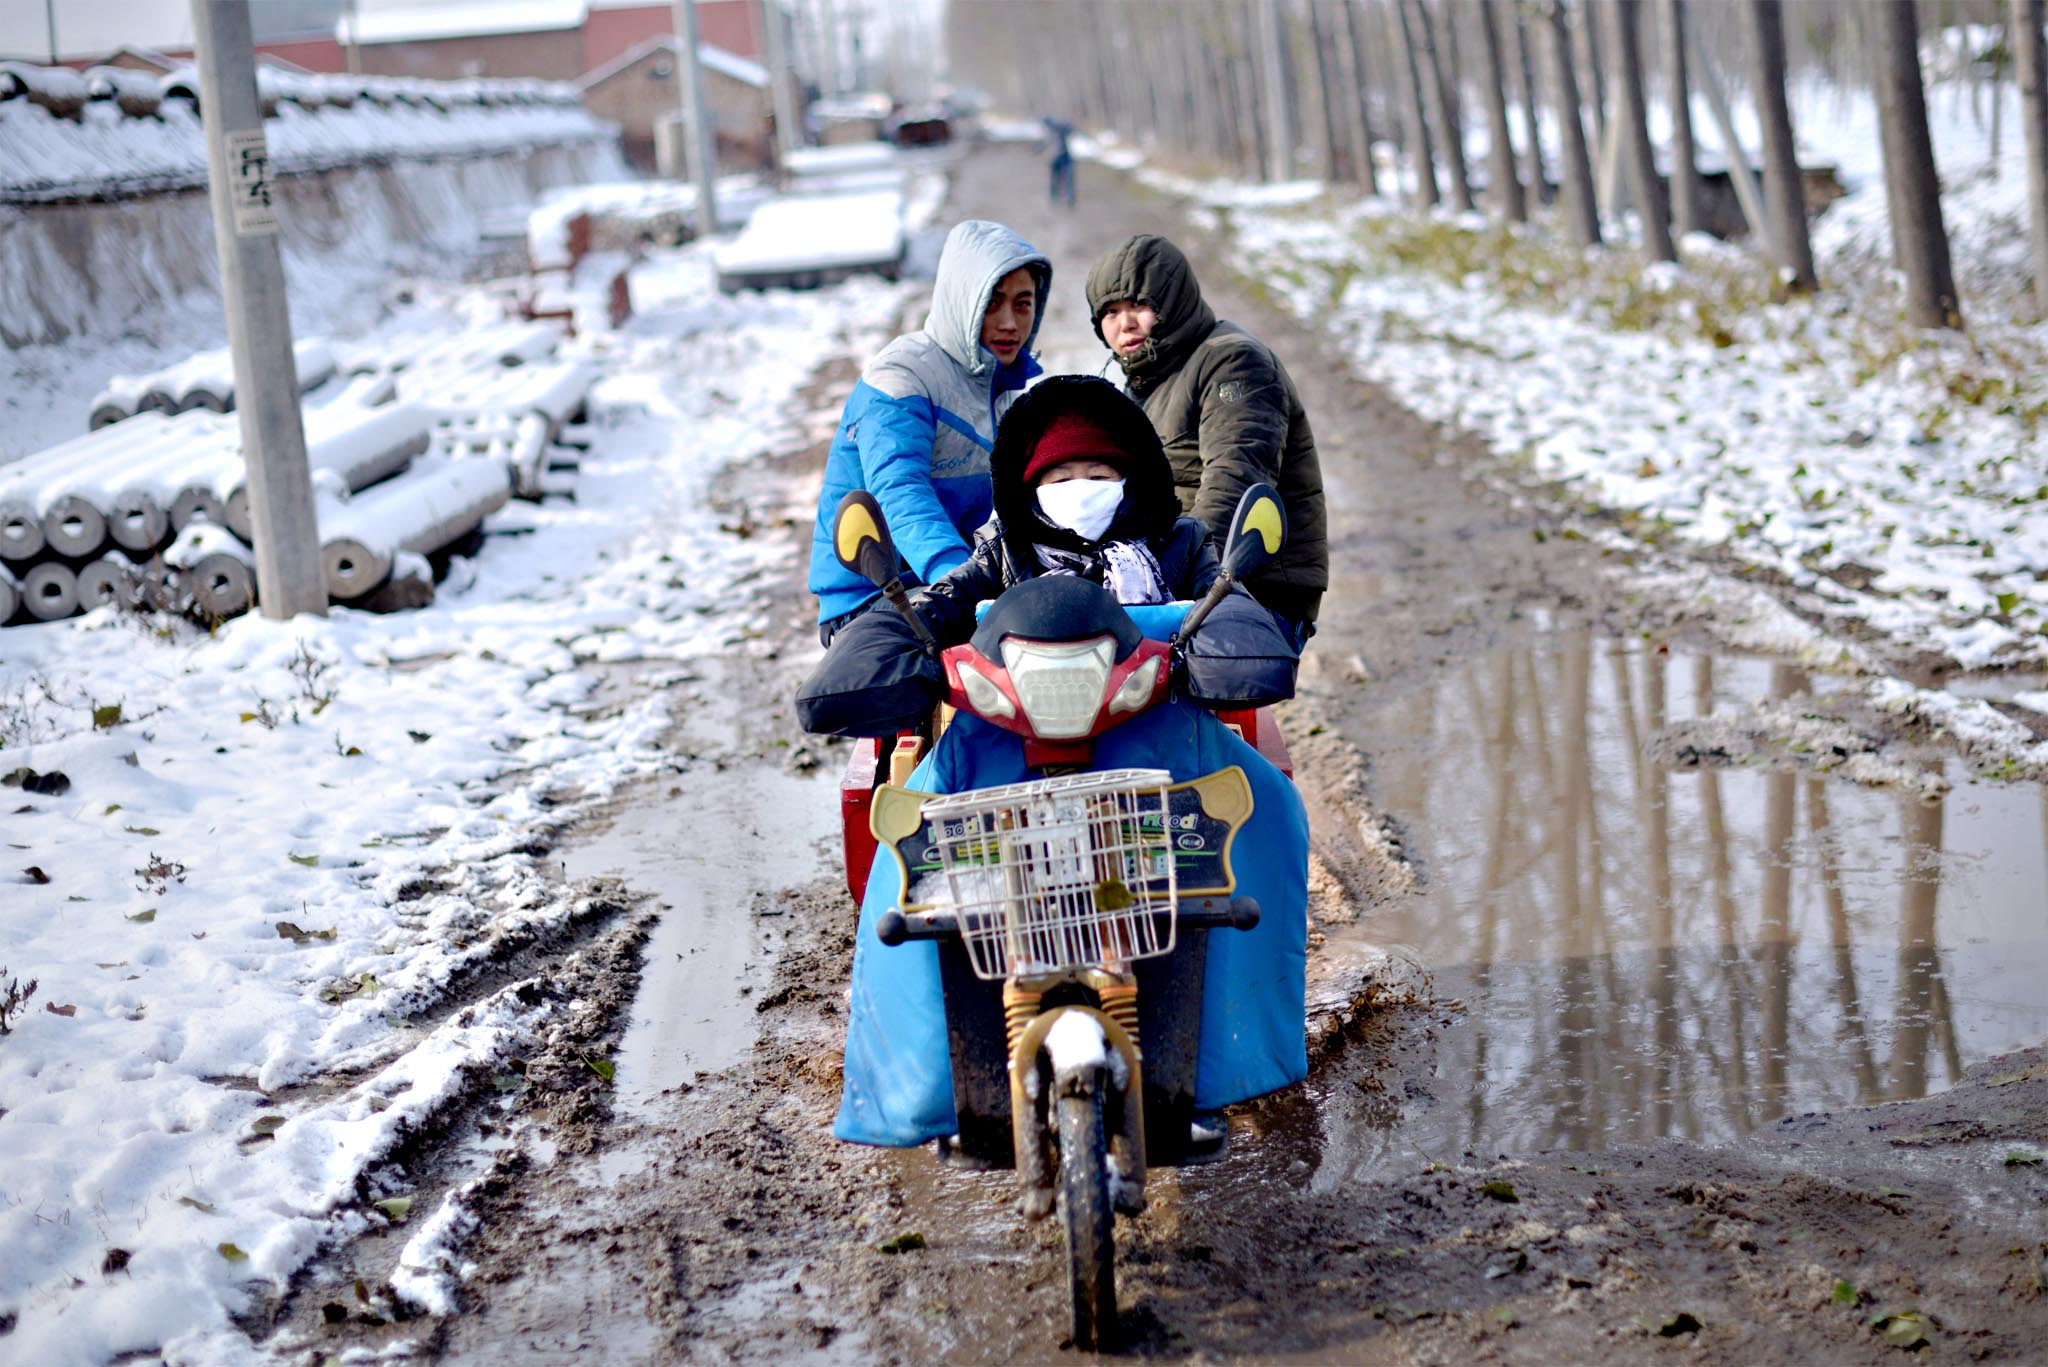 A group of men ride a tricycle across a muddy road in Beijing on Monday